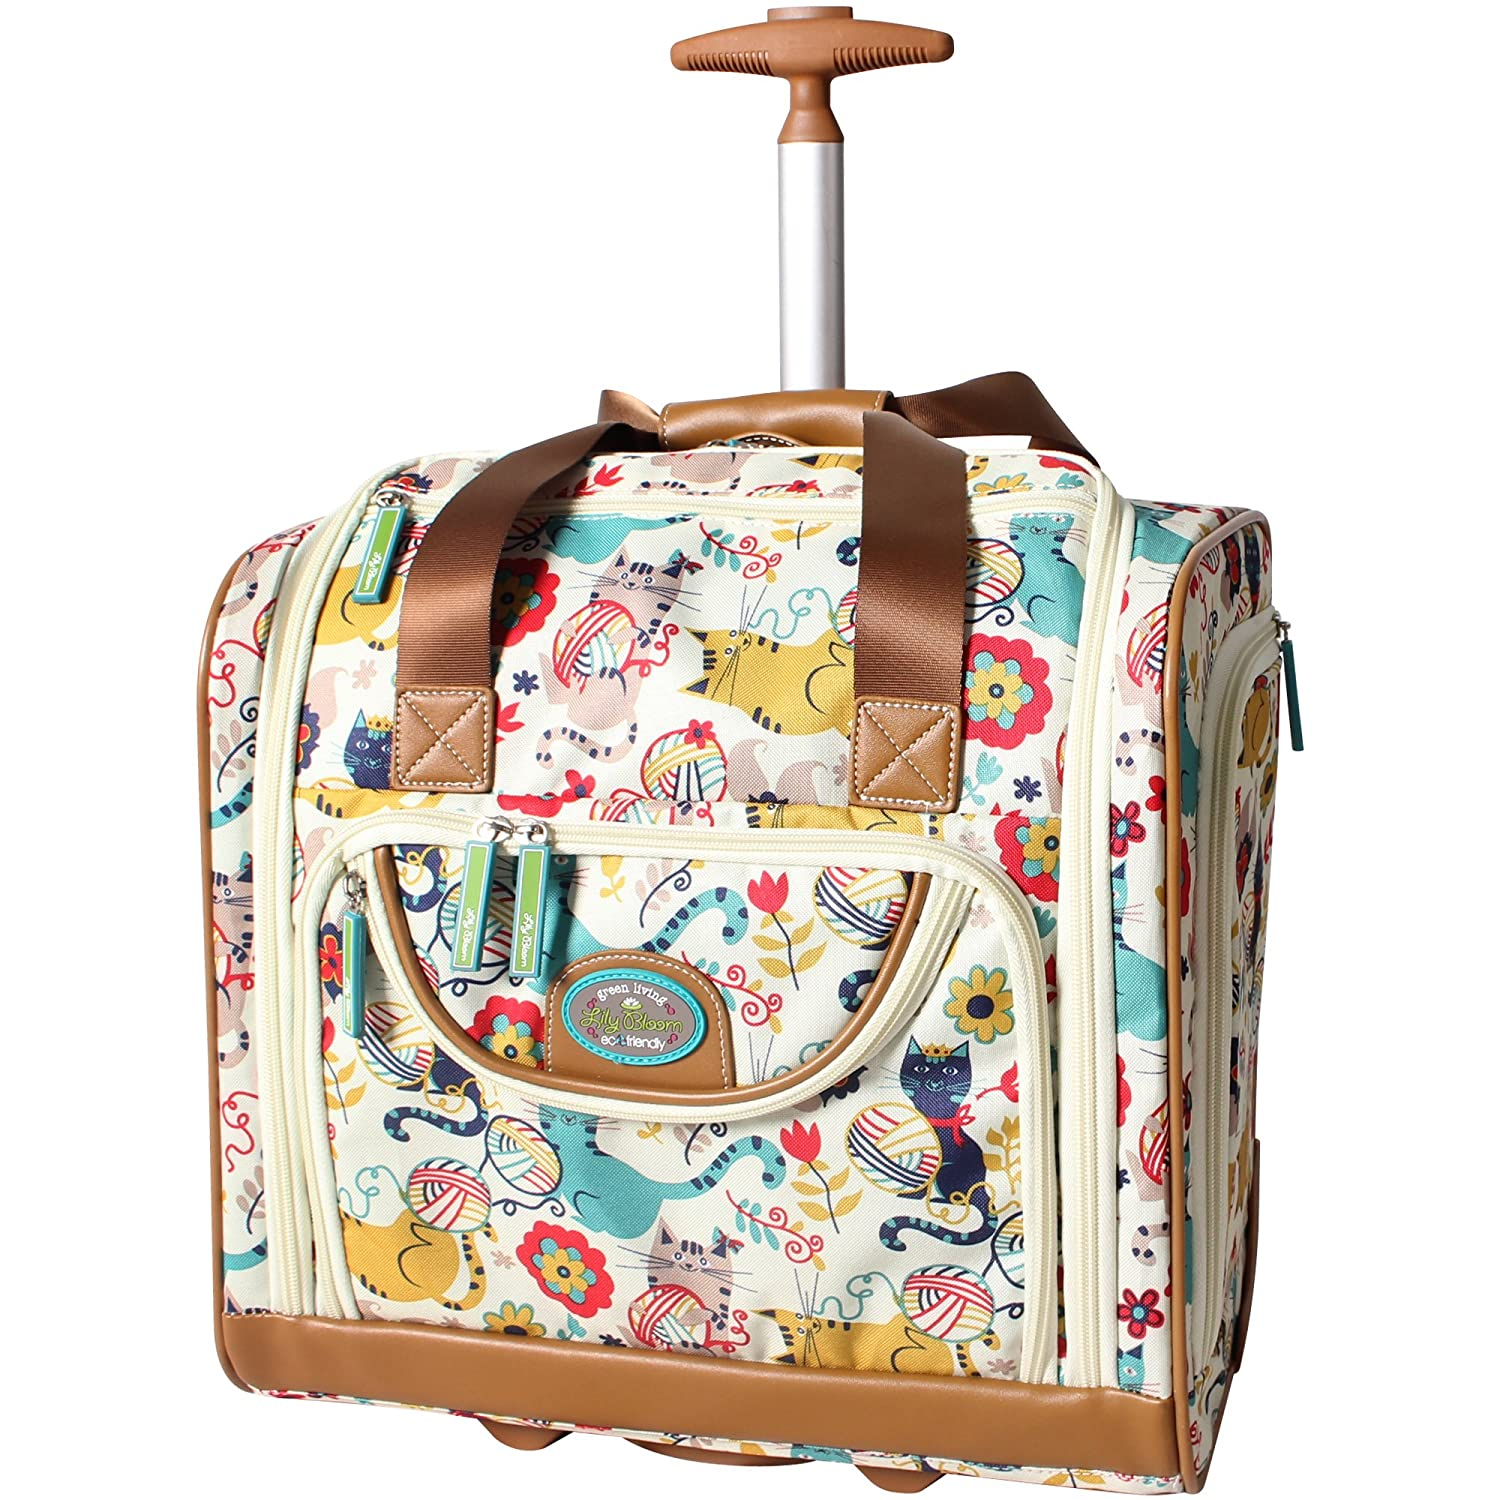 Lily Bloom Under the Seat Design Pattern Carry on Bag With Wheels (One Size, Furry Friend-2)